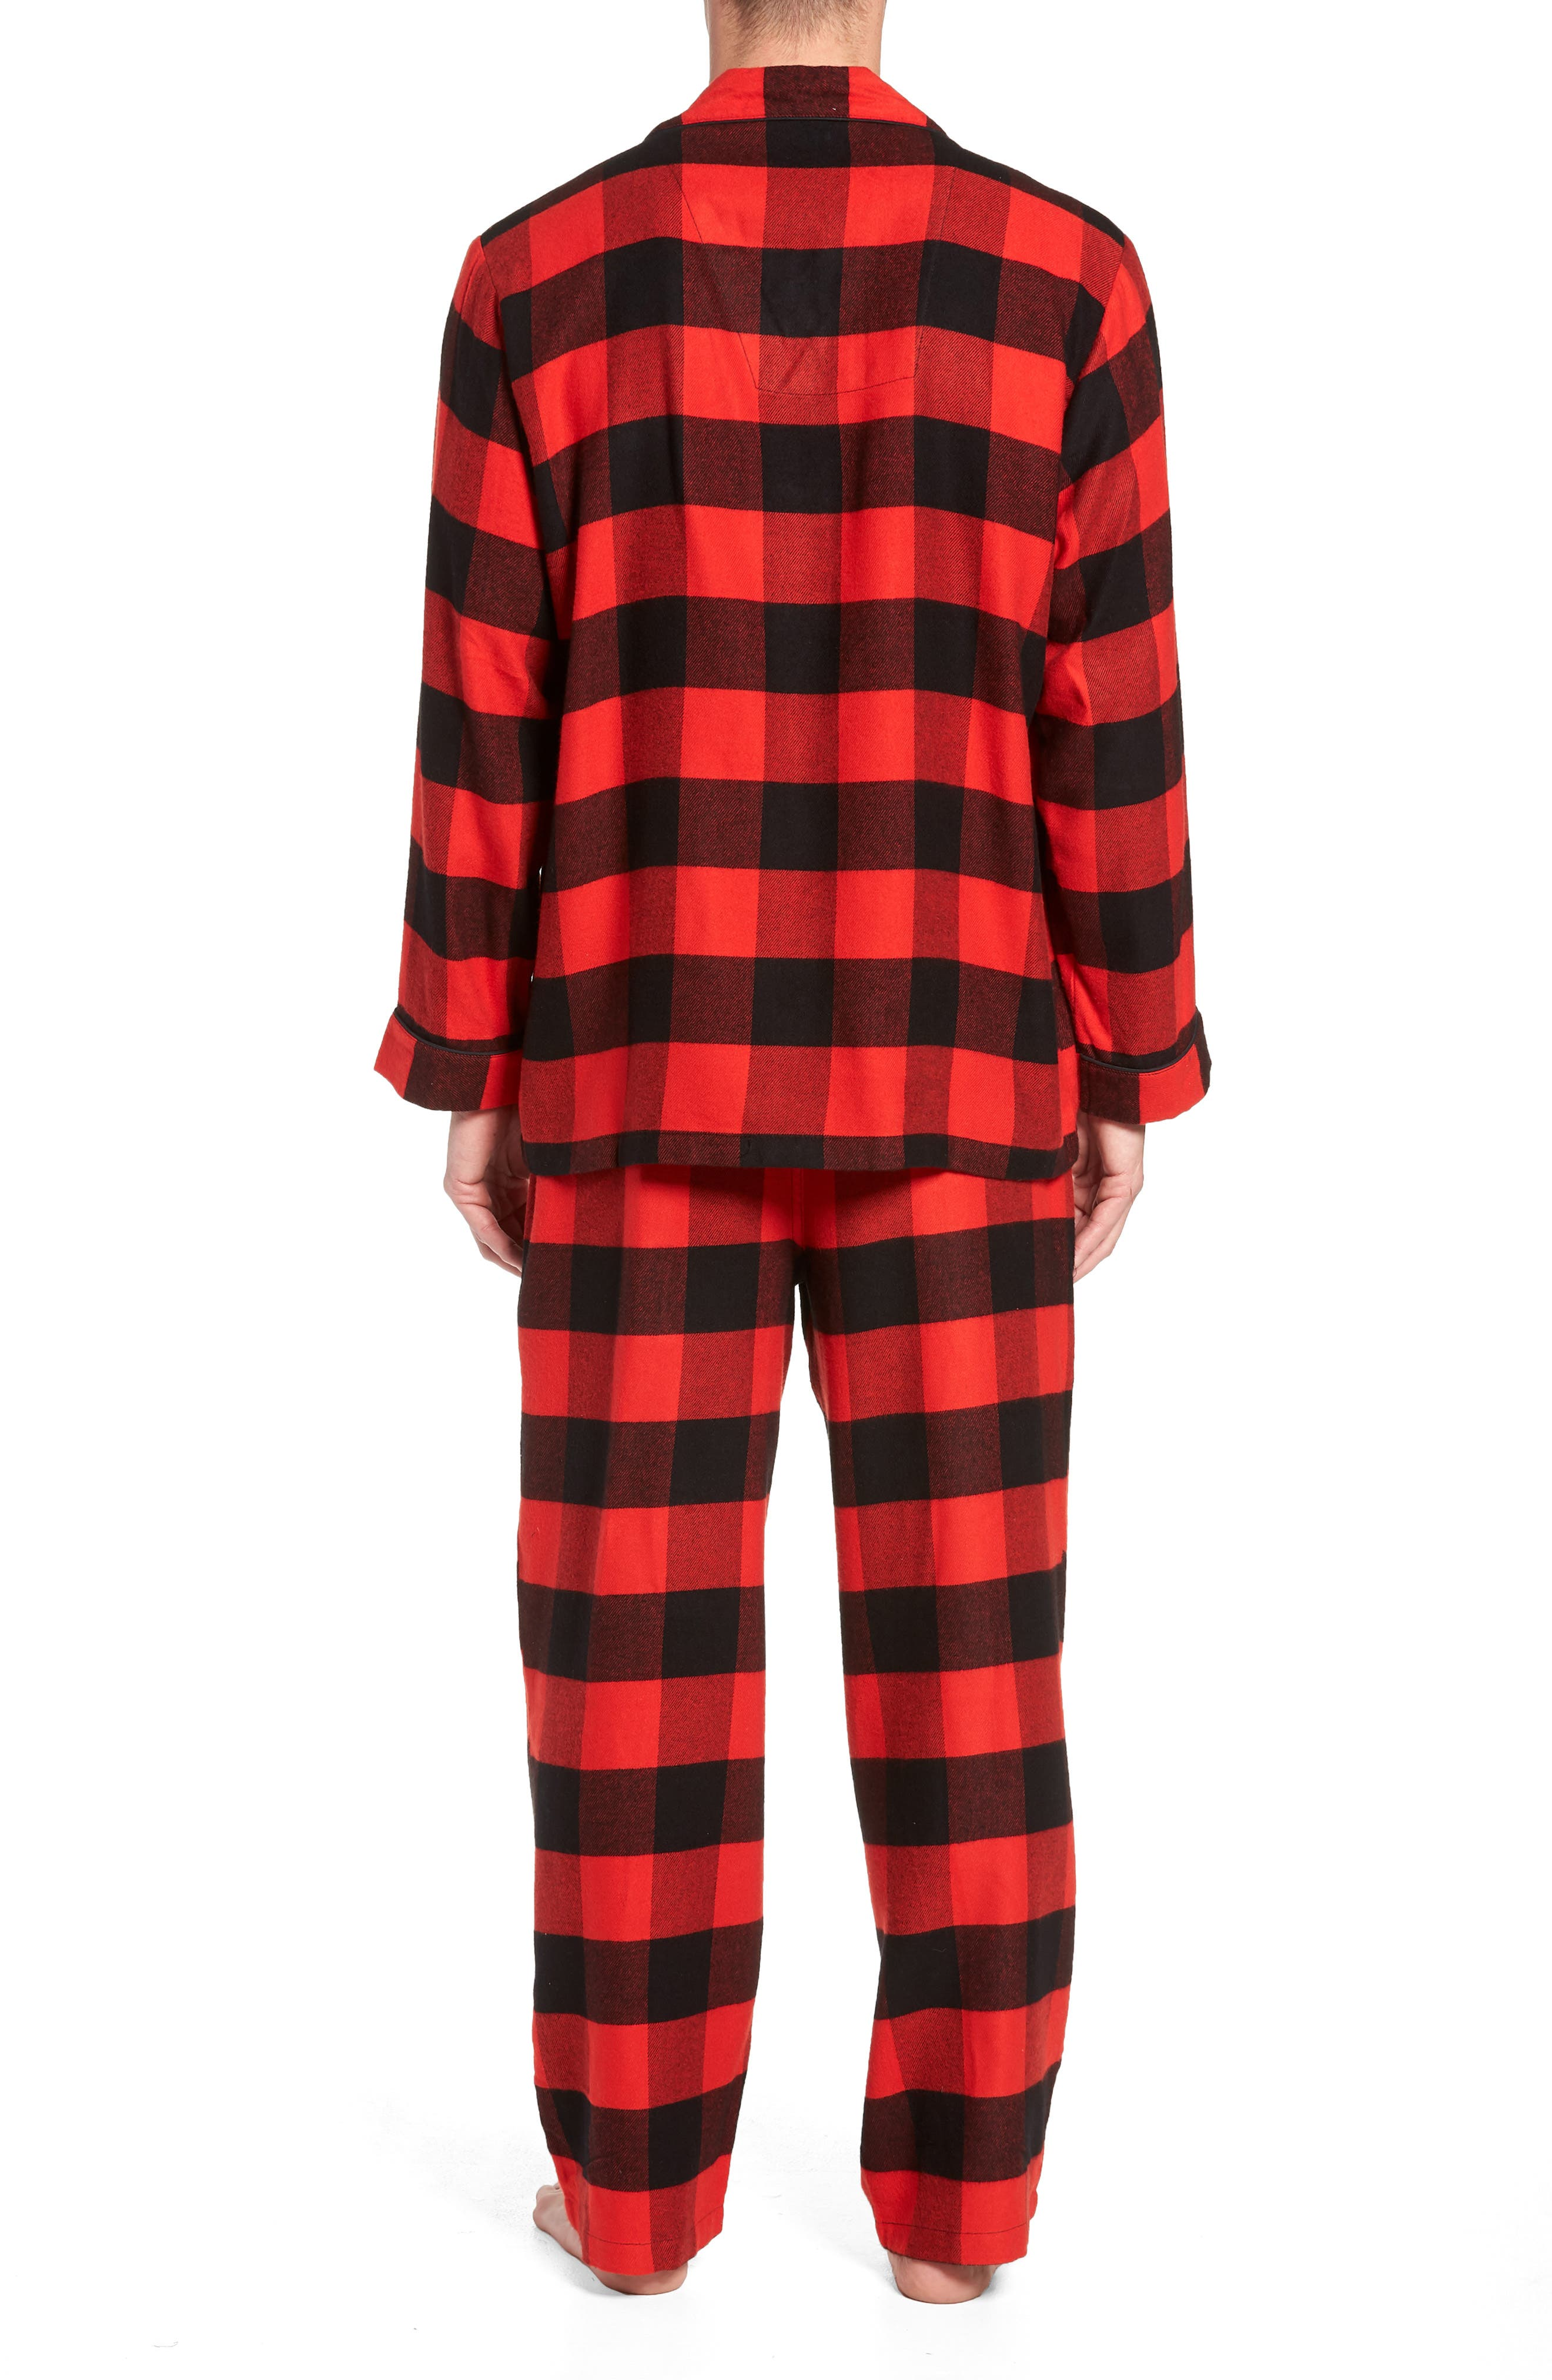 NORDSTROM MEN'S SHOP,                             Family Father Flannel Pajamas,                             Alternate thumbnail 2, color,                             610